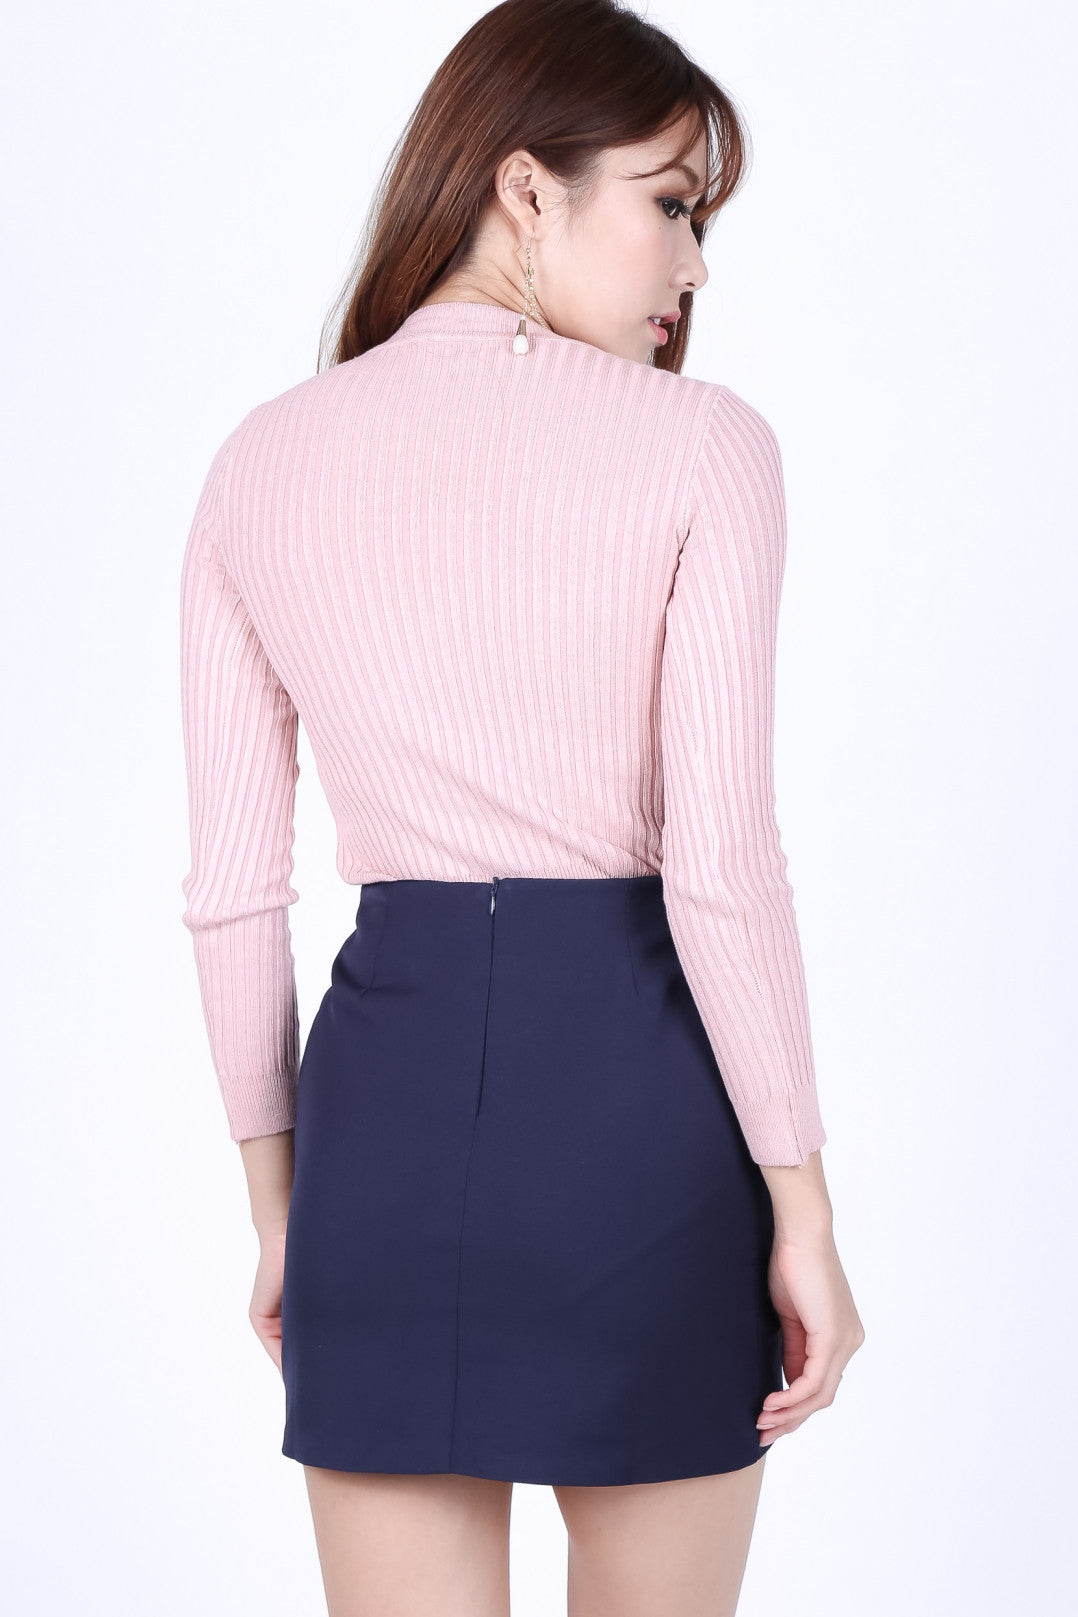 *RESTOCKED* WILLOW SOFT KNIT TOP IN BABY PINK